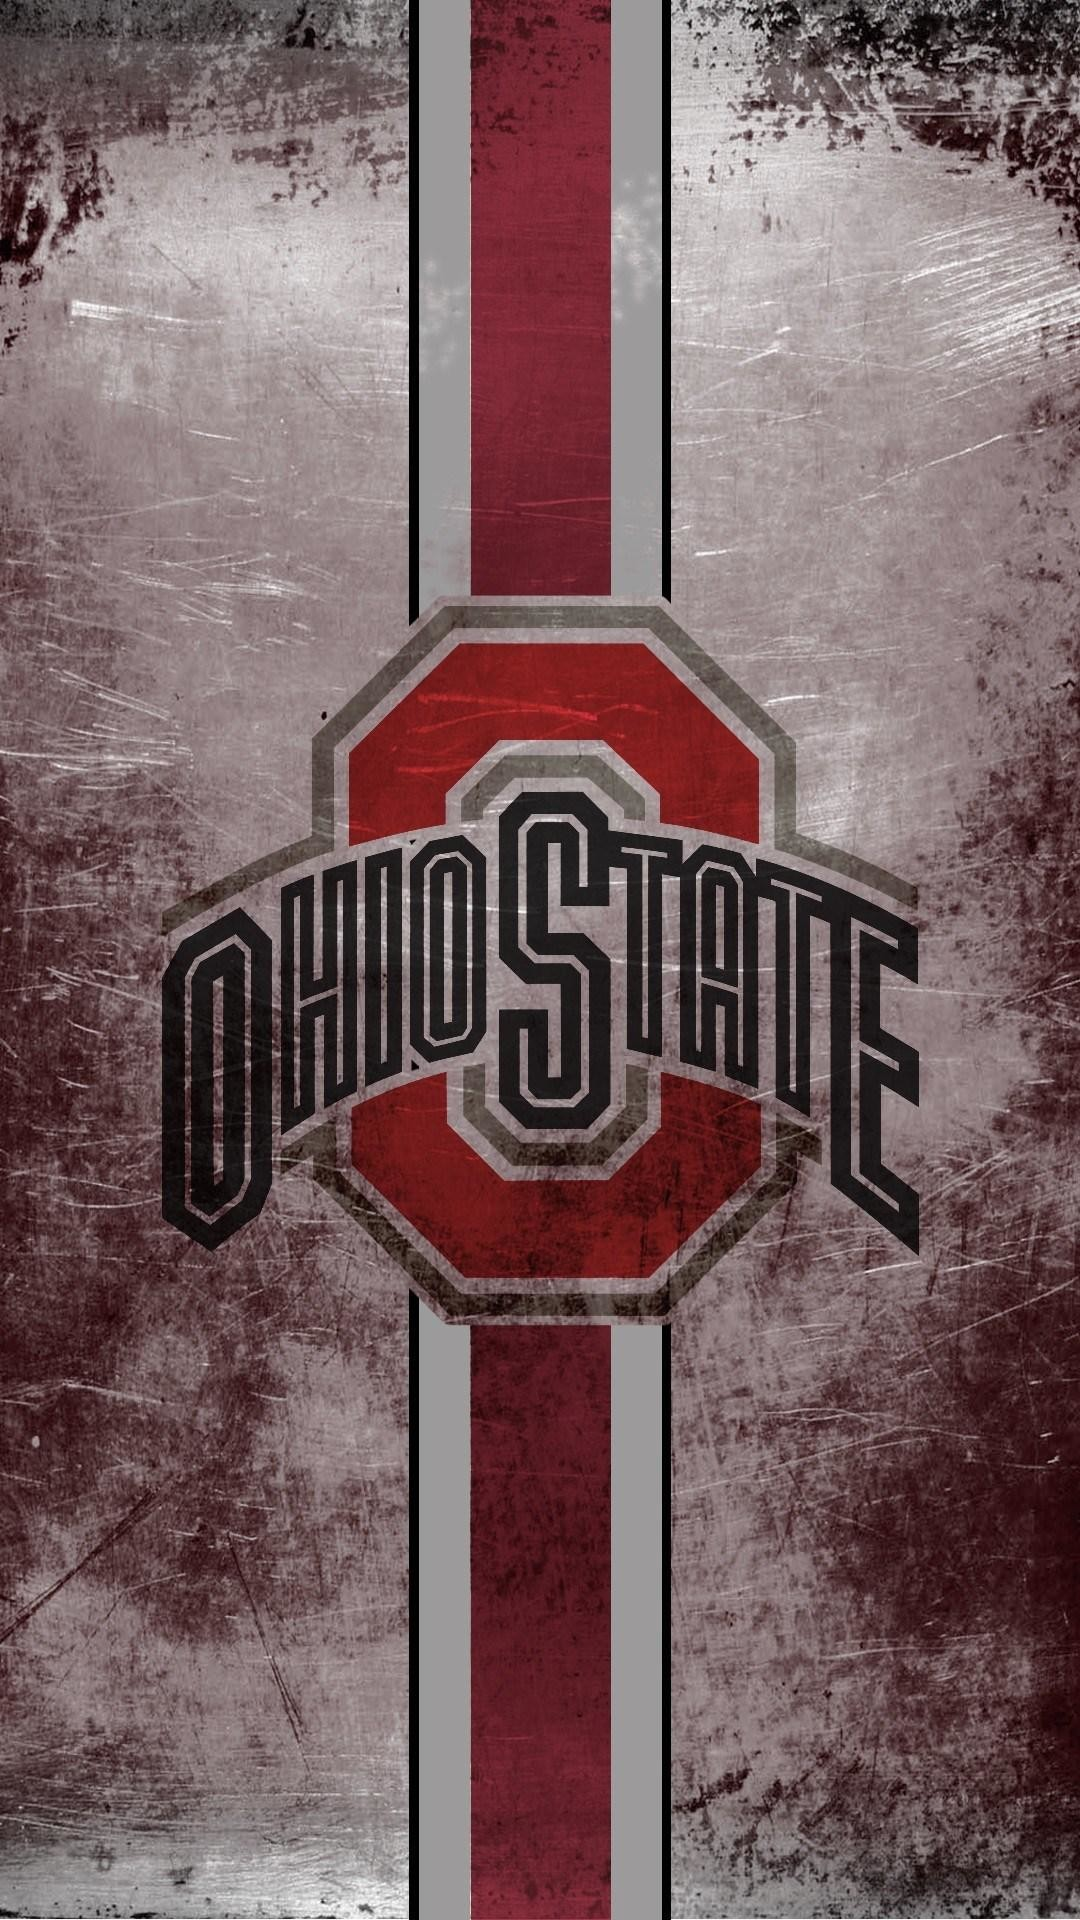 1080x1920 Ohio state football wallpaper find wallpapers for free jpg   Background black ohio state wallpaper football